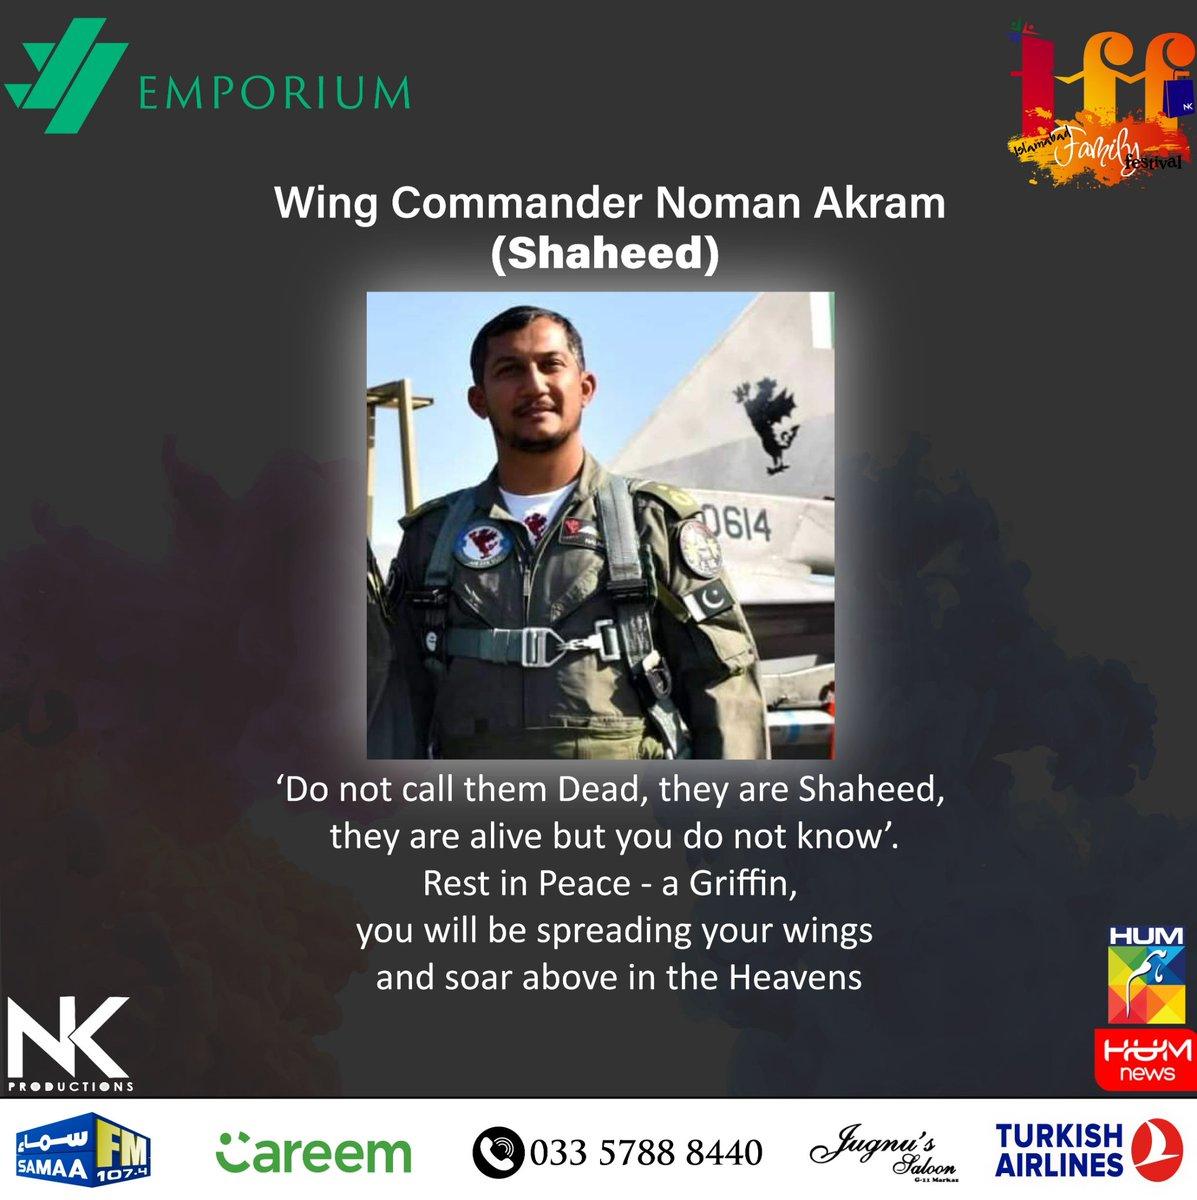 May Allah give the highest place in jinnah for one of the best pilot PAF ever had. Rest in Peace Hero. #Paf #pakistanairforce #F16Crash #f16fightingfalcon #airforce #pakistan  #hero #F16 #islamabad #planecrashpic.twitter.com/NjNpIcZh3w